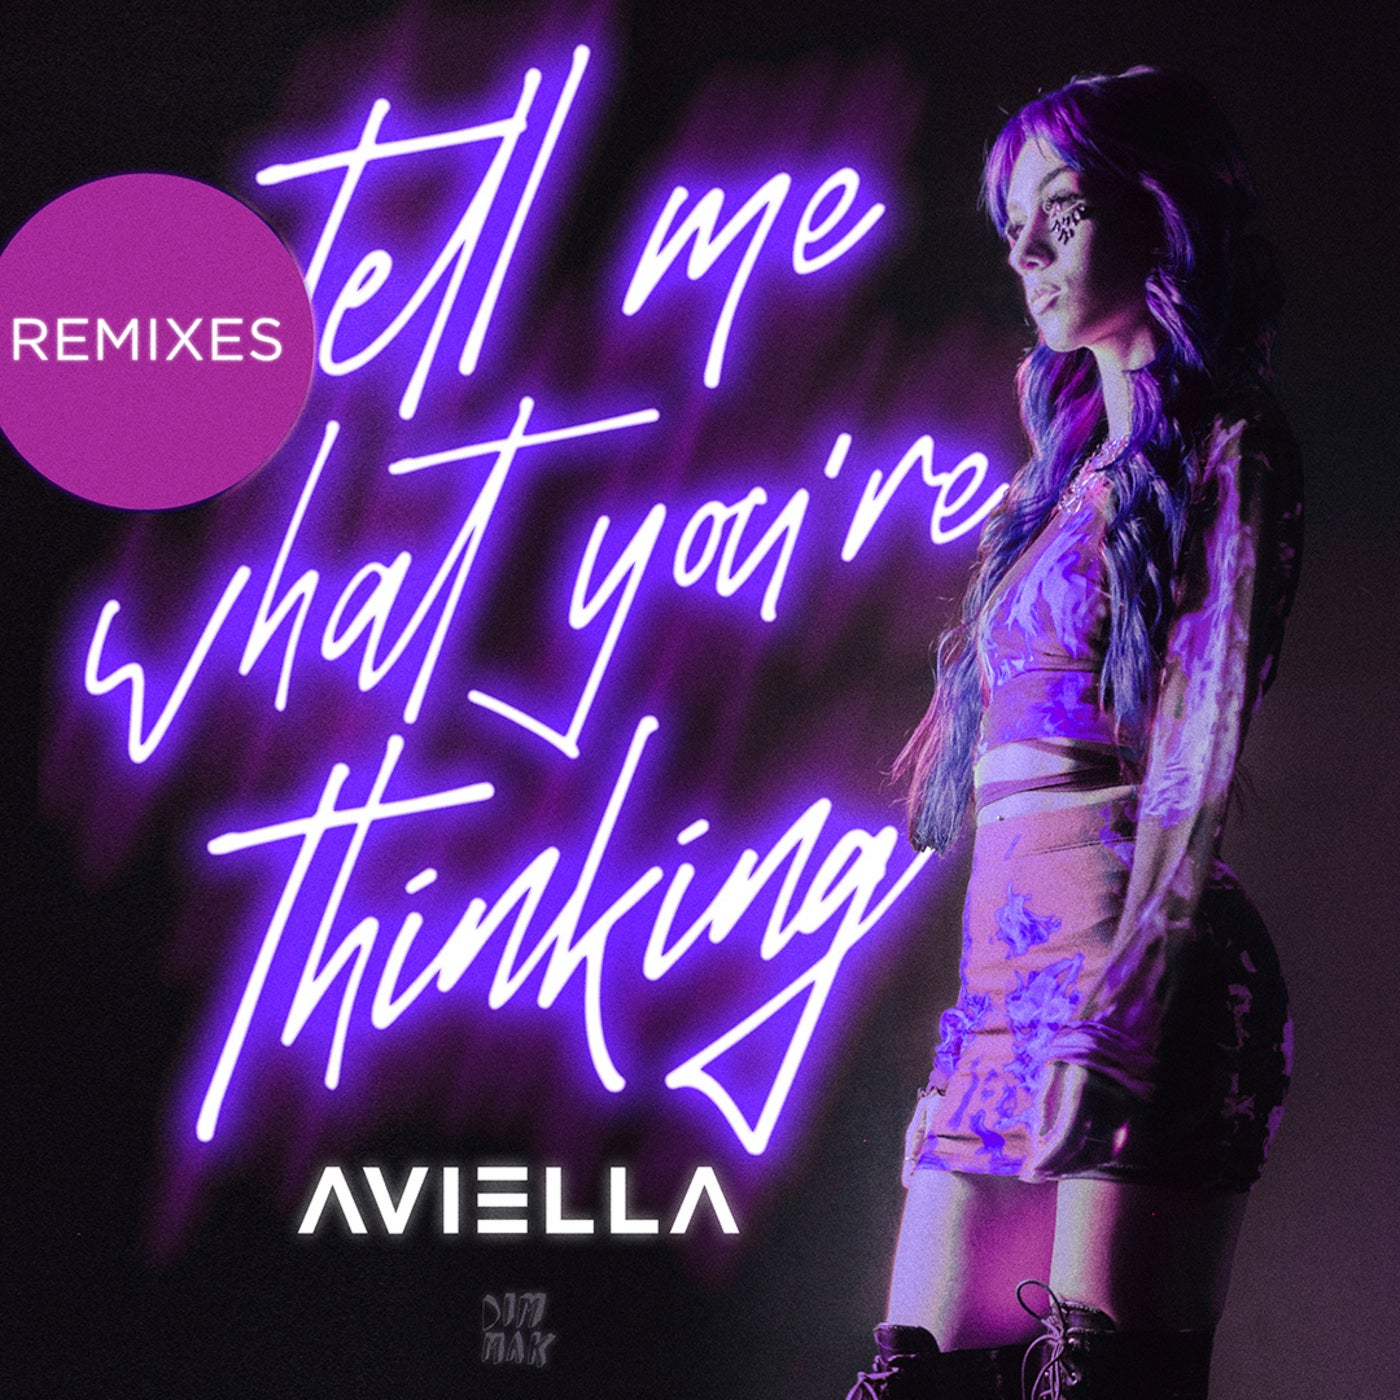 Aviella - Tell Me What 're Thinking (lipless Extended Remix) on Revolution Radio